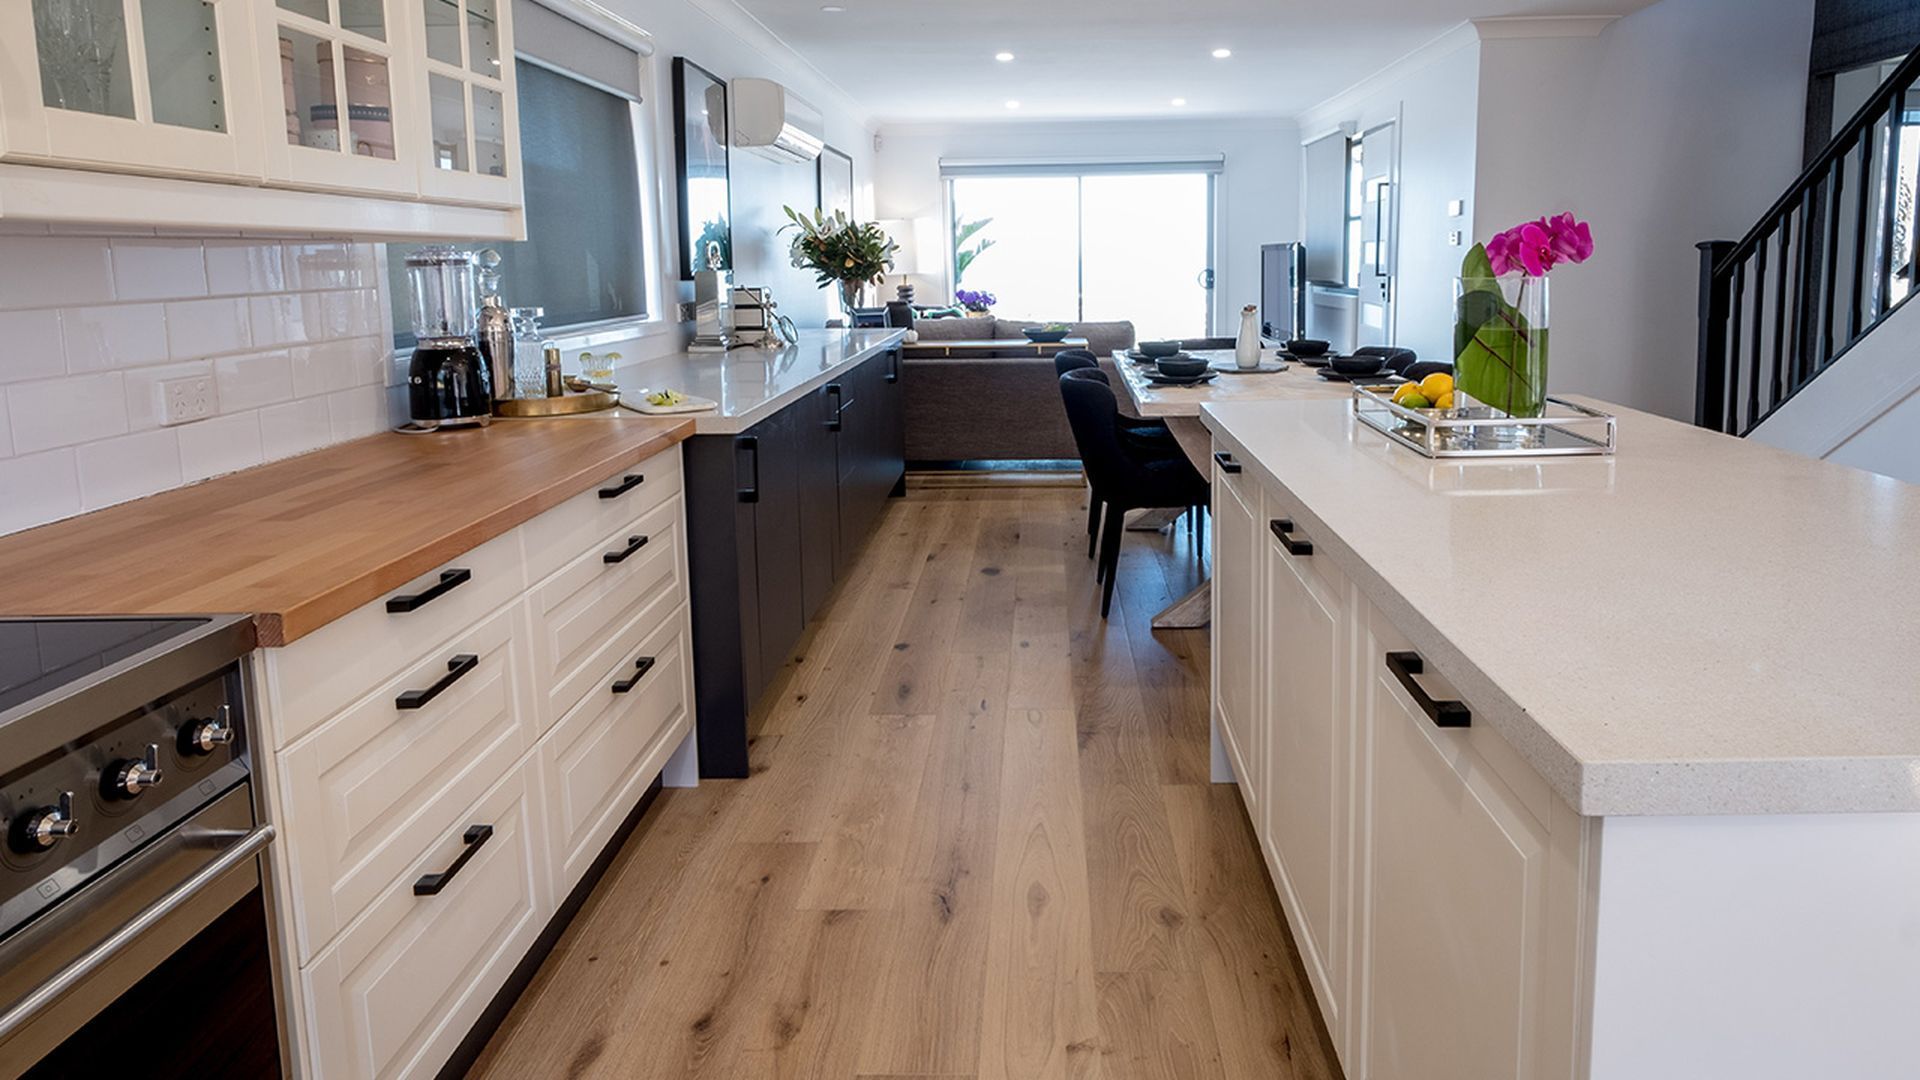 AFTER: The open plan kitchen that opens on the dining and lounge room